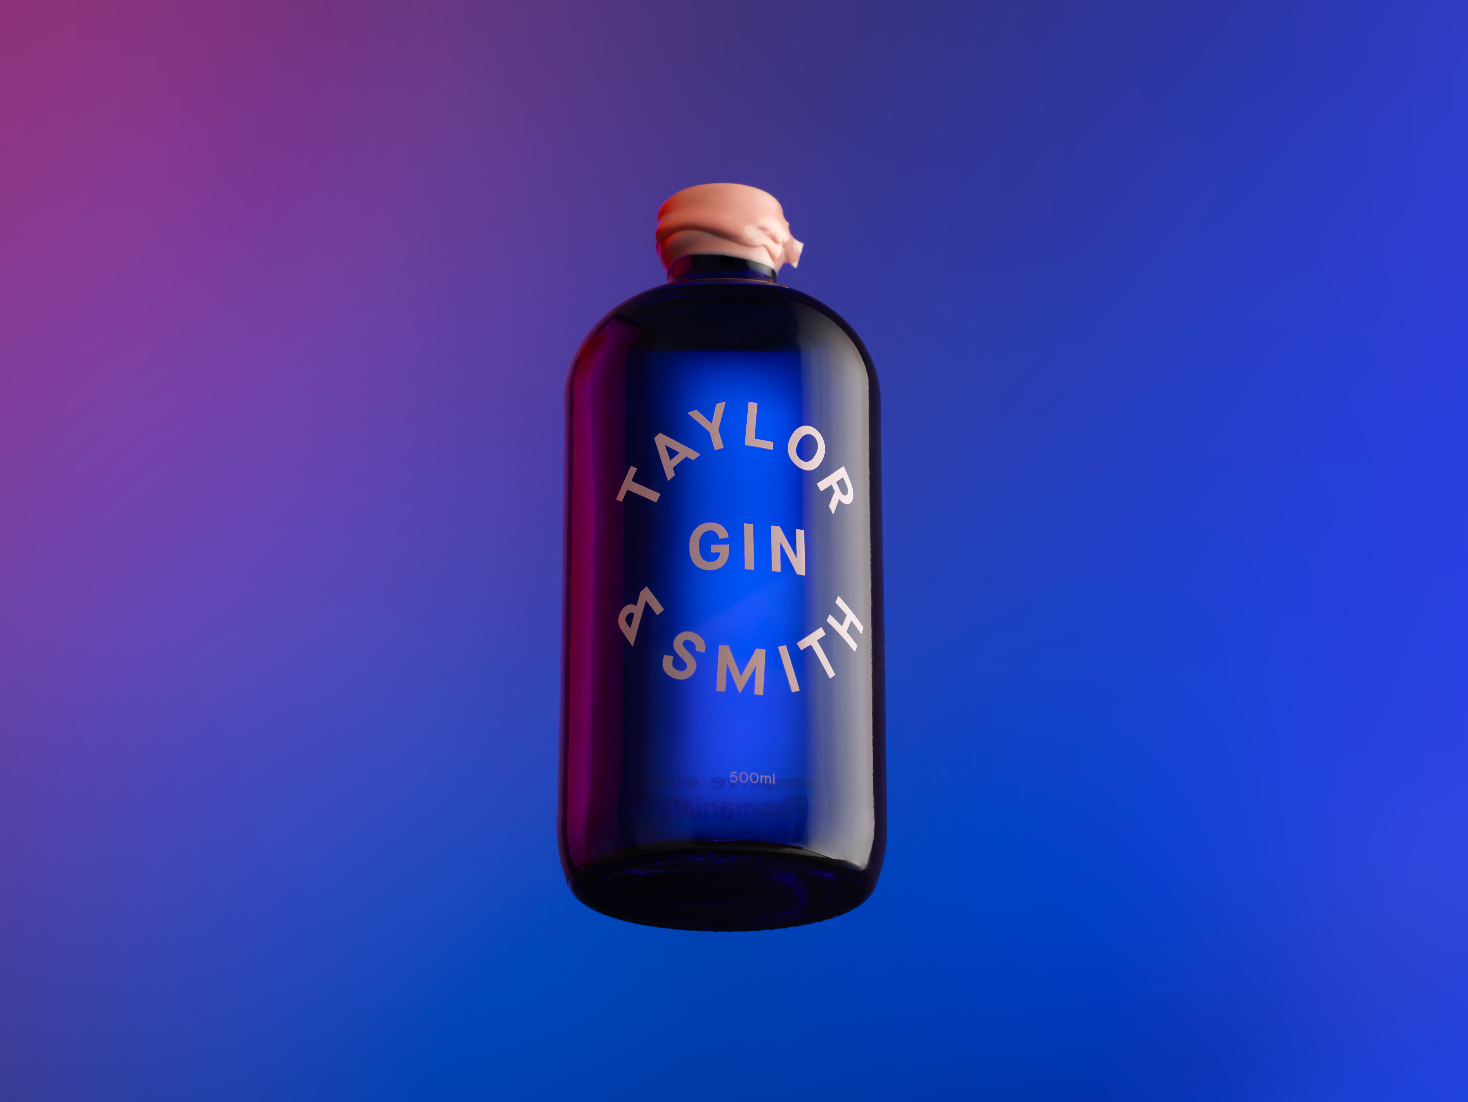 Copy of 1_Taylort-and-smith-gin (1).png